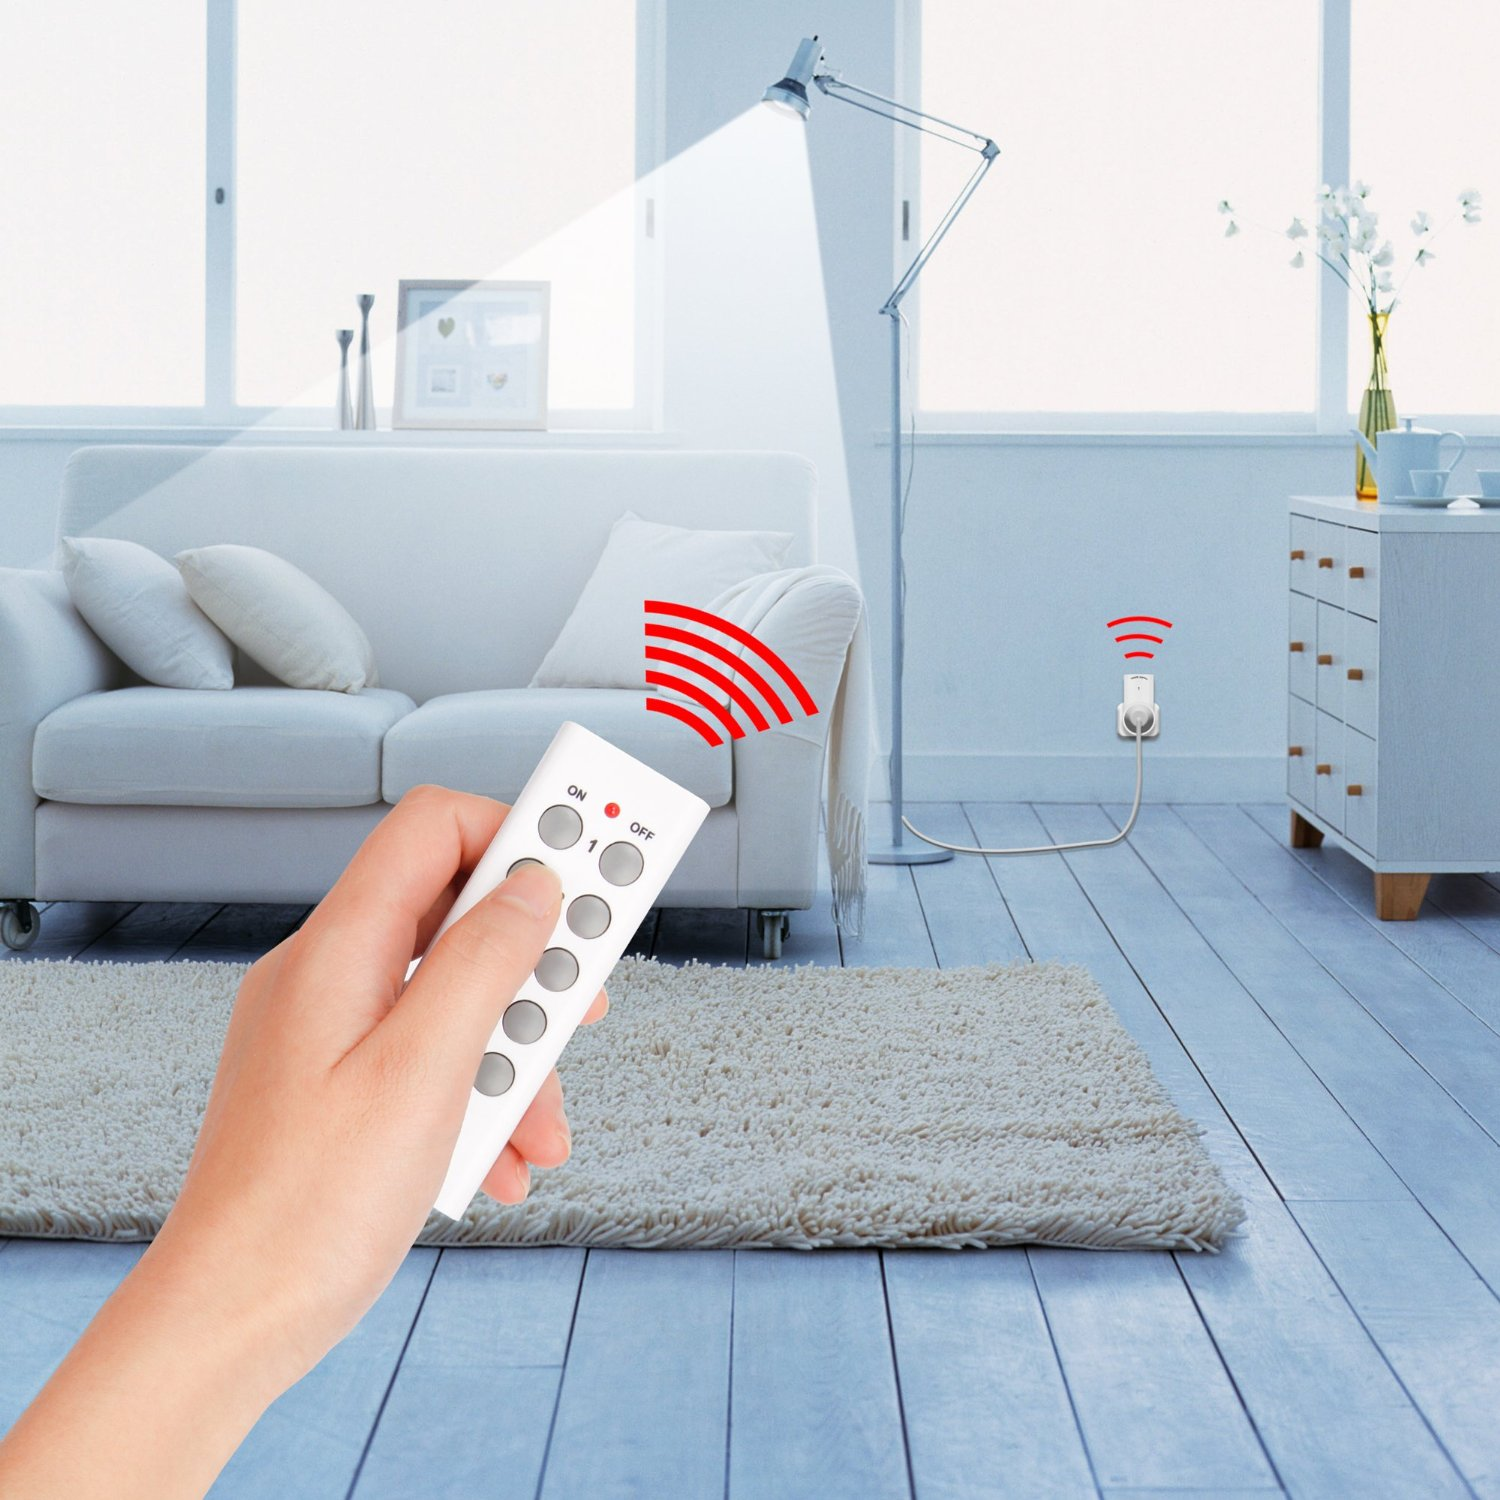 Wireless Remote Light Switch: Control any gadget in your house remotely with this affordable converter  kit – BGR,Lighting